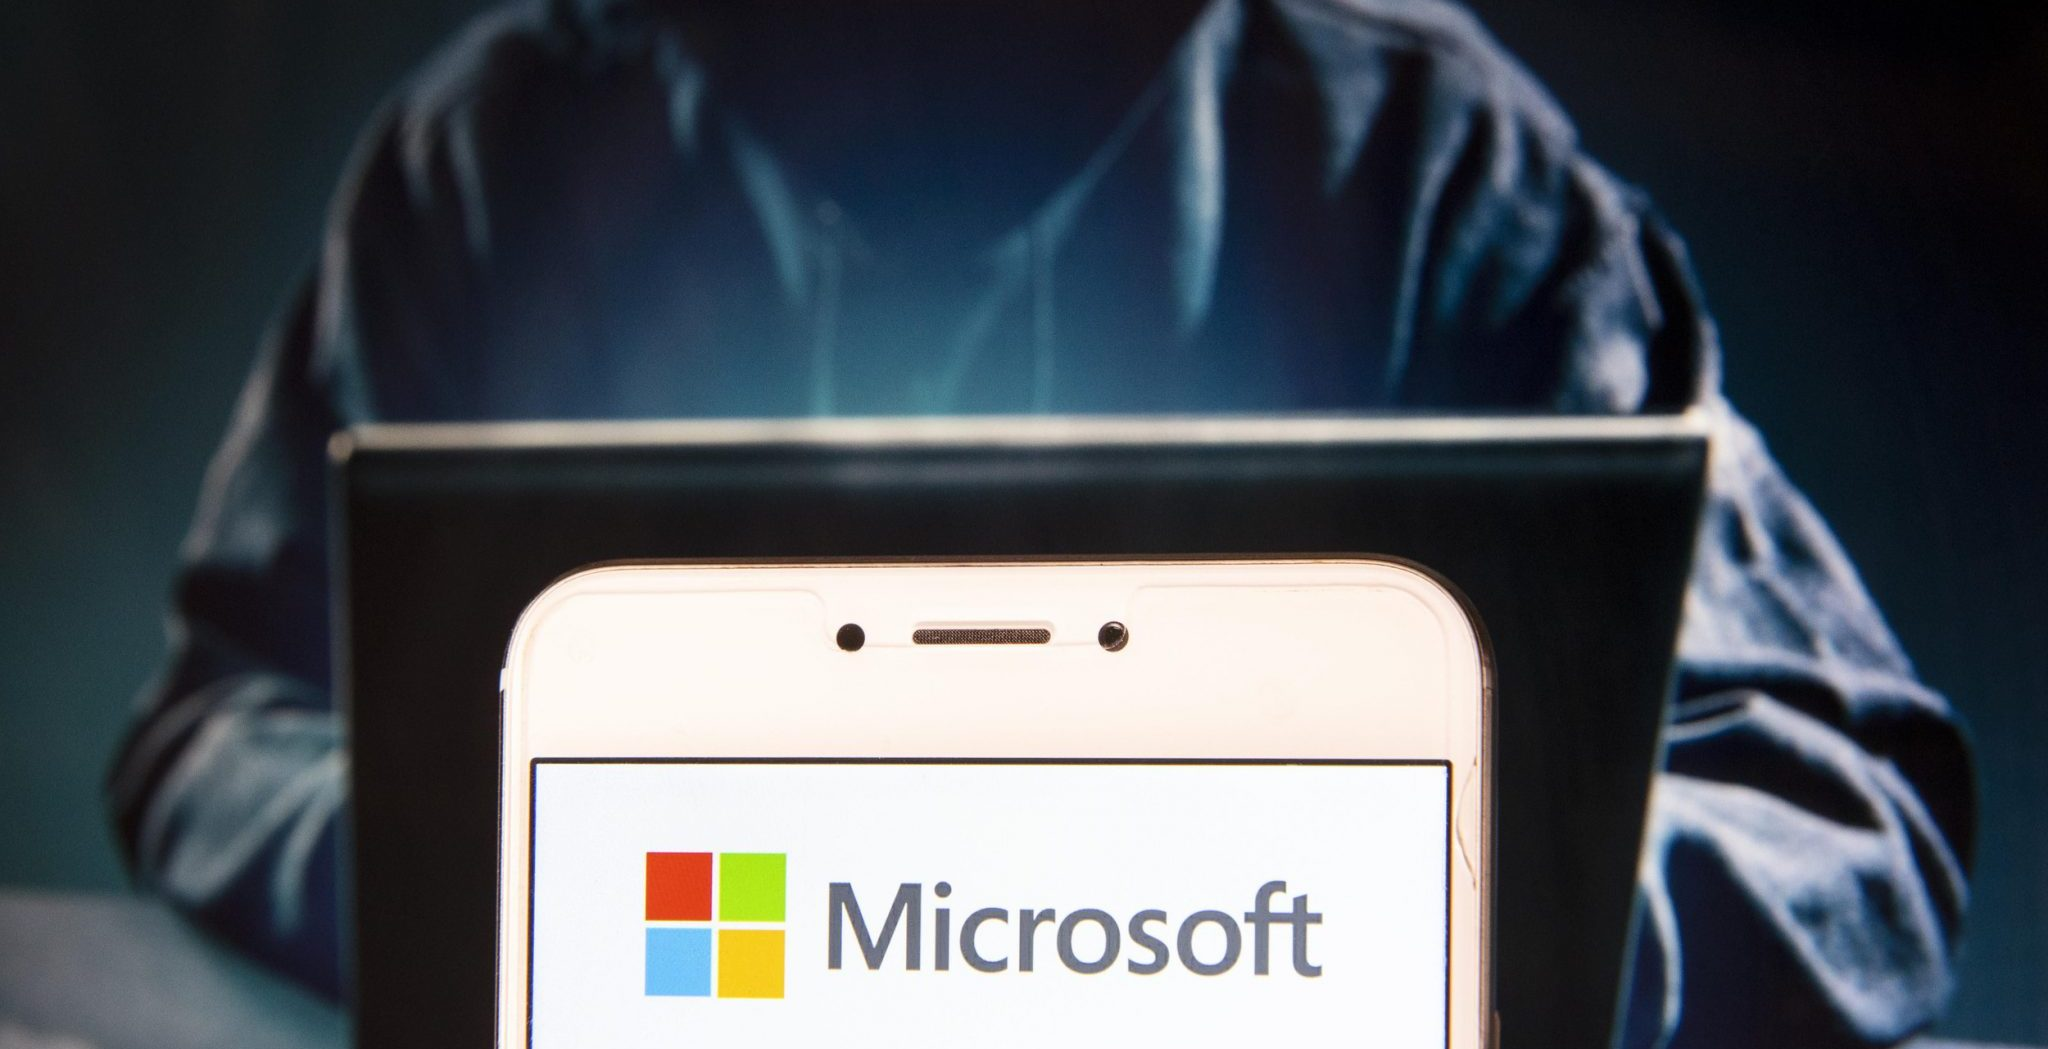 Microsoft Warns That Critical Windows Server 'Perfect 10' Exploit Attack Is Underway